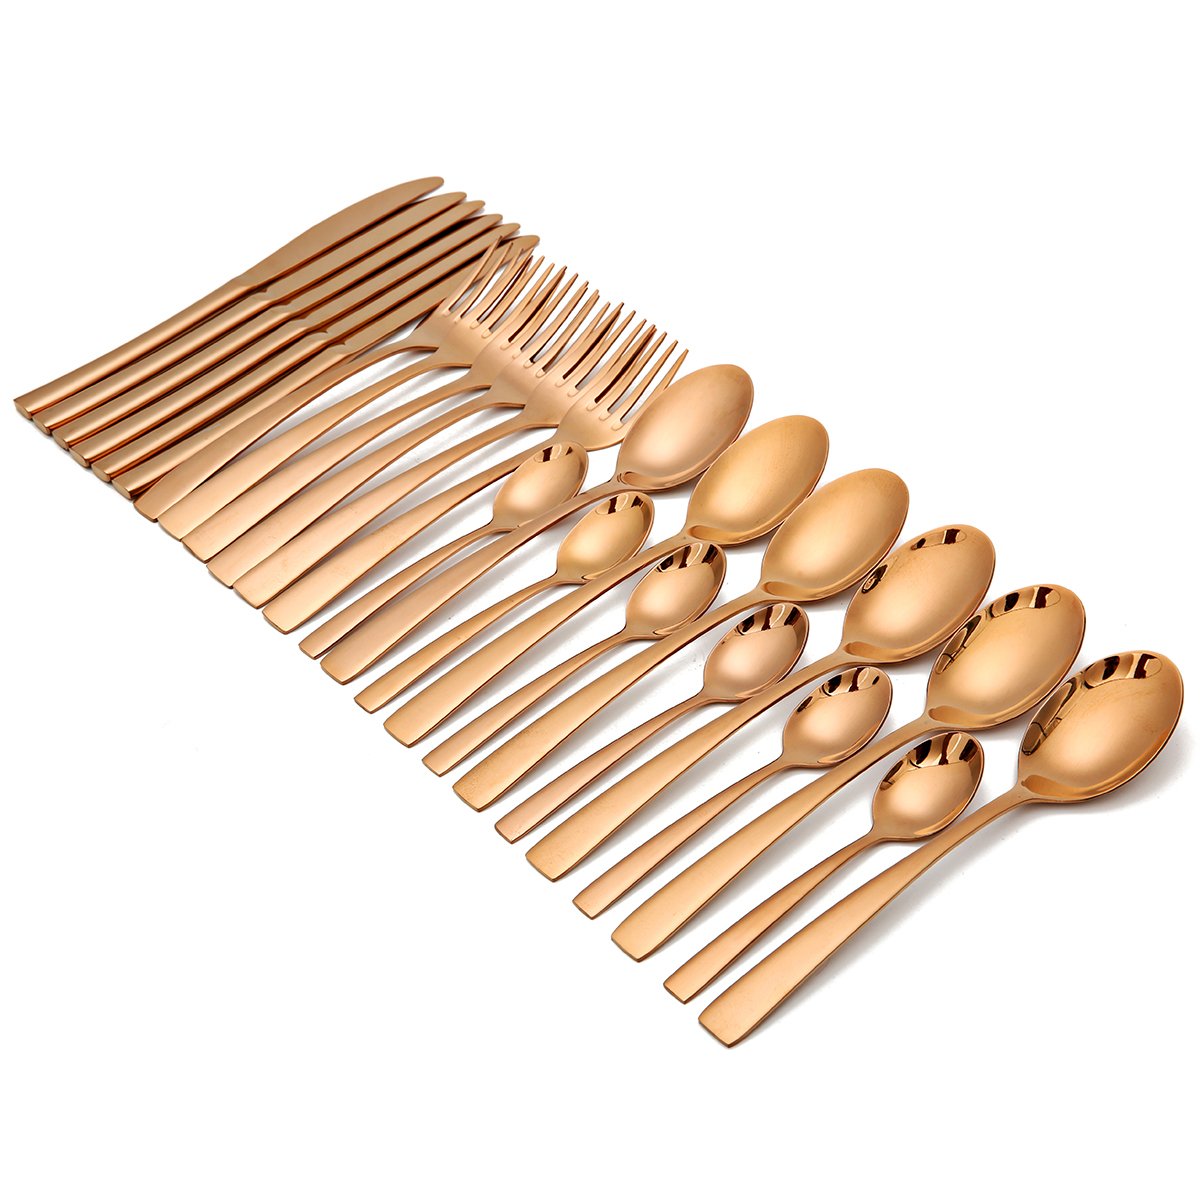 KCASA KC-ST05 High-end Stainless Steel 24 Pieces Gold Flatware Set Dinnerware Set